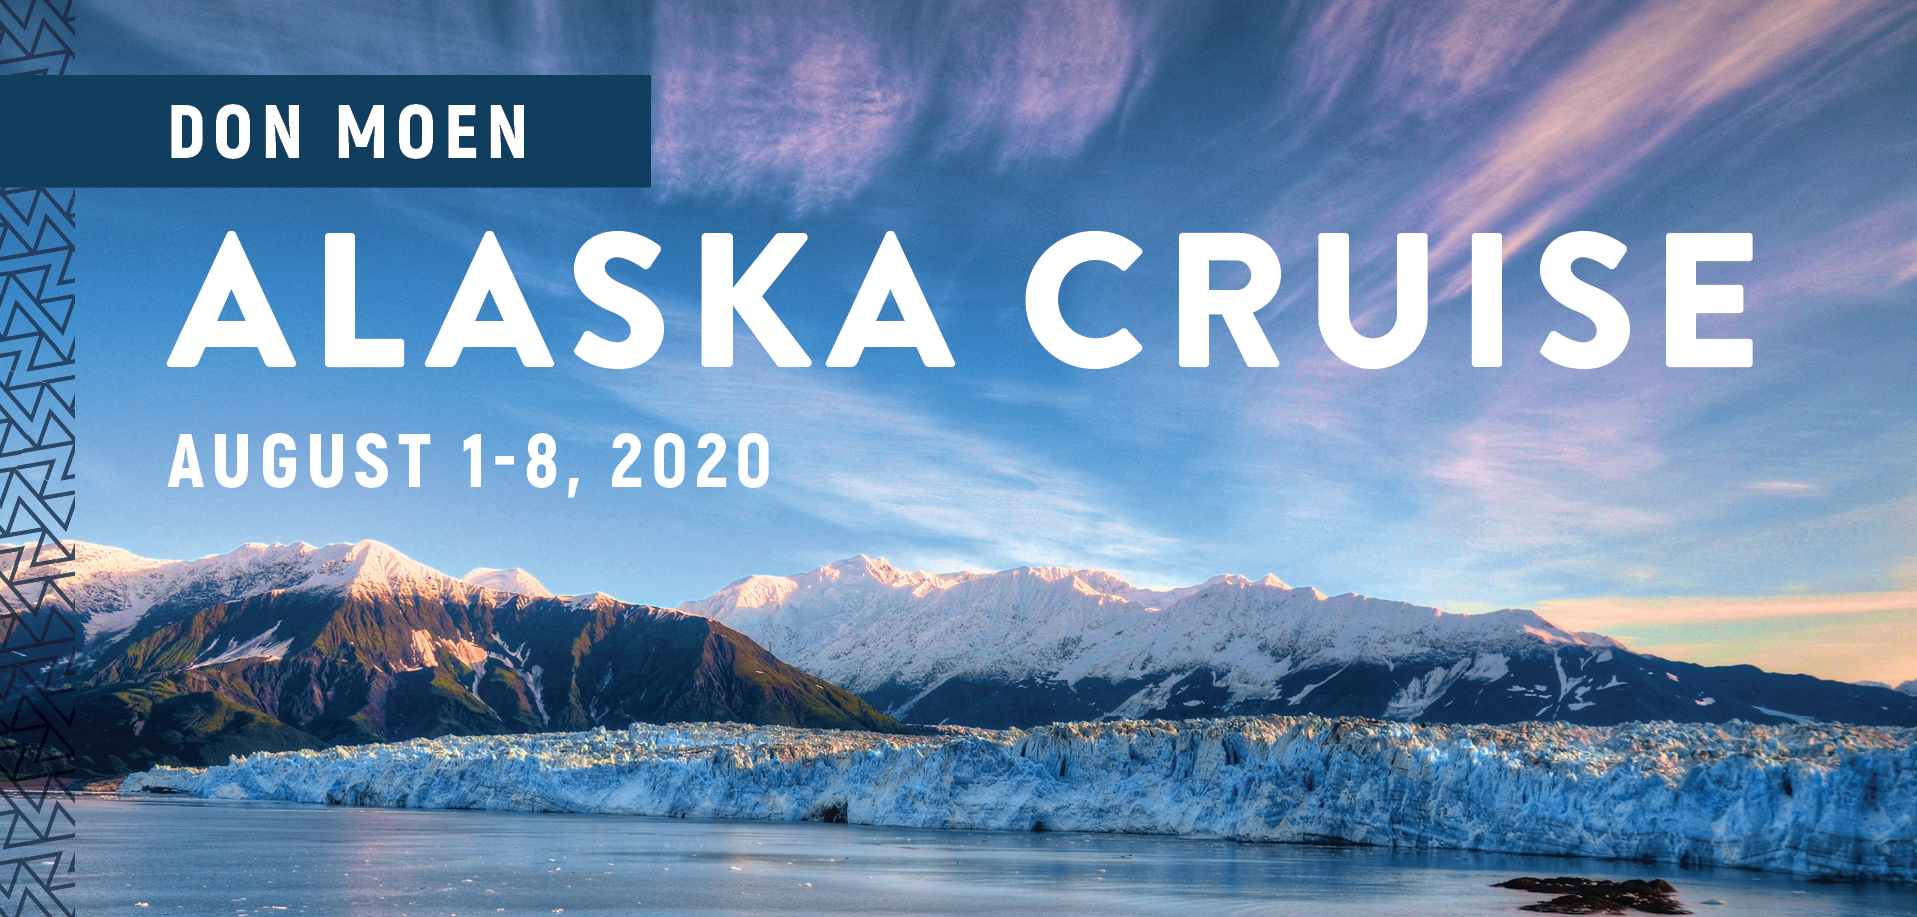 Take a Christian Cruise with Don Moen - Christian Cruise to Alaska - August 30 - September 6, 2020